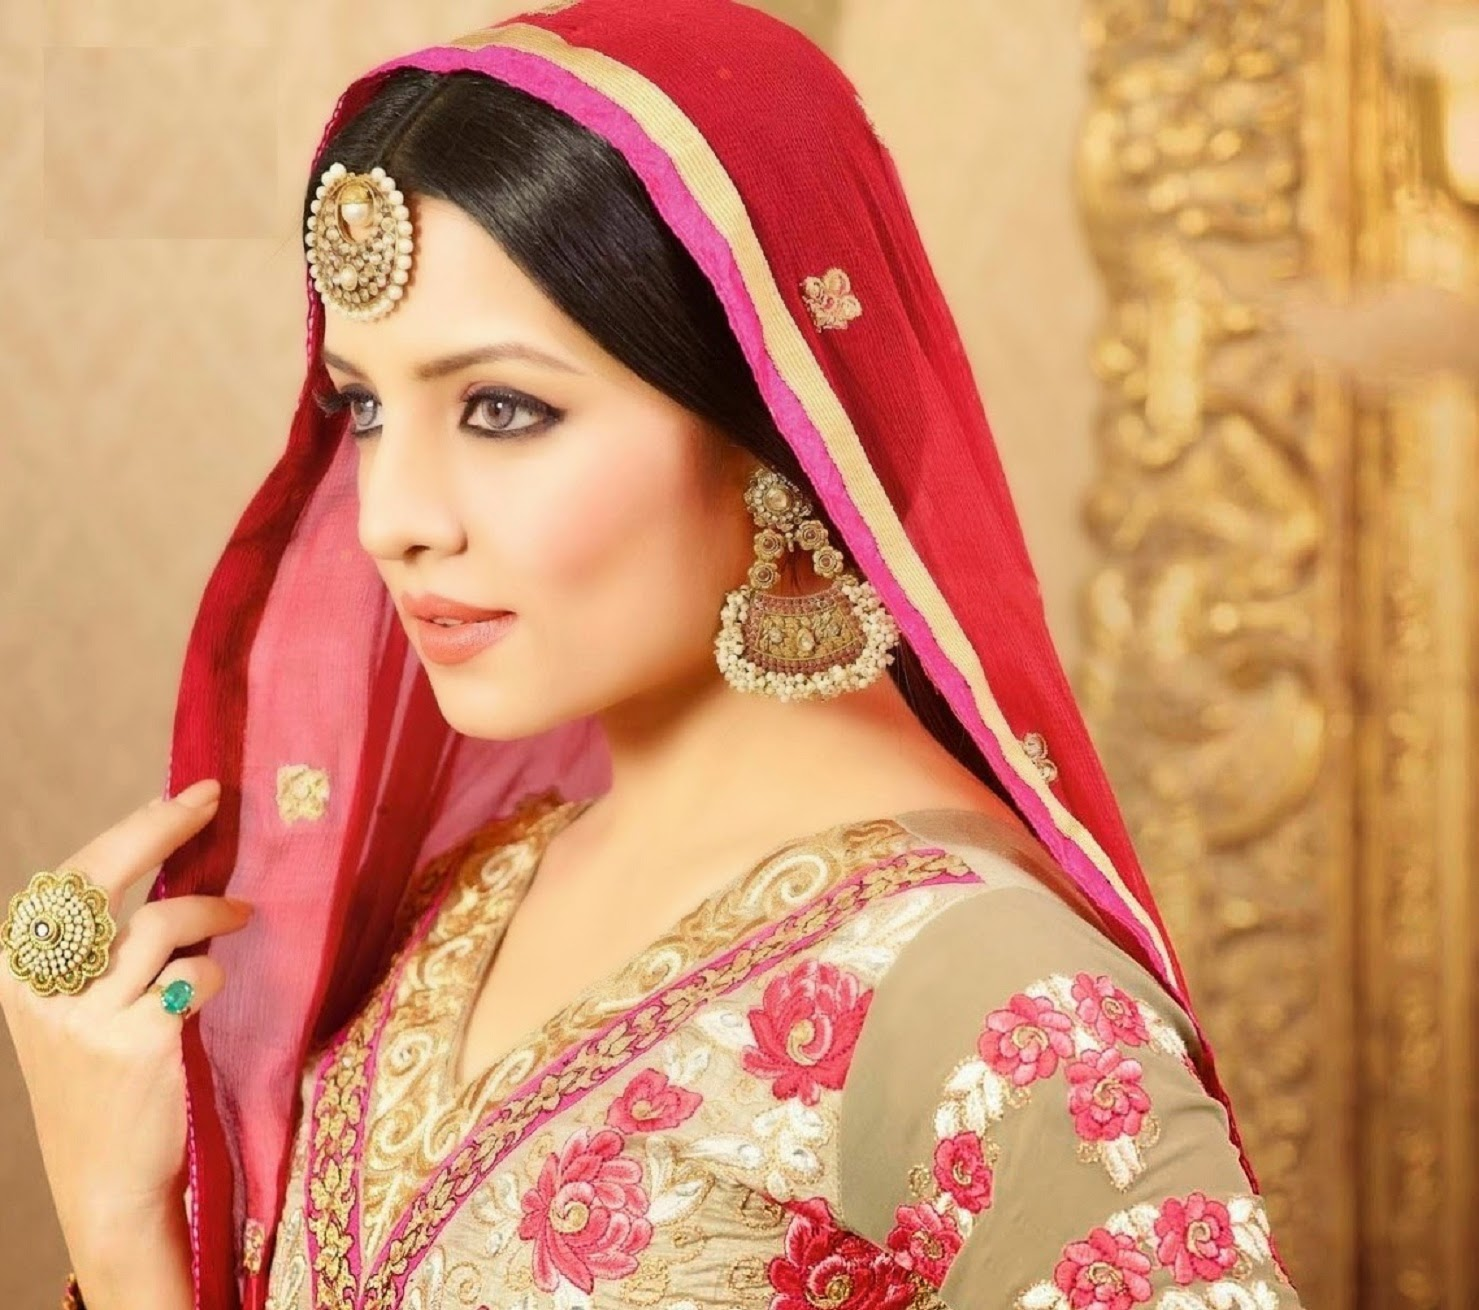 Cute Celina Jaitly Fantastic Side Look Mobile Hd Download Free Background Pictures